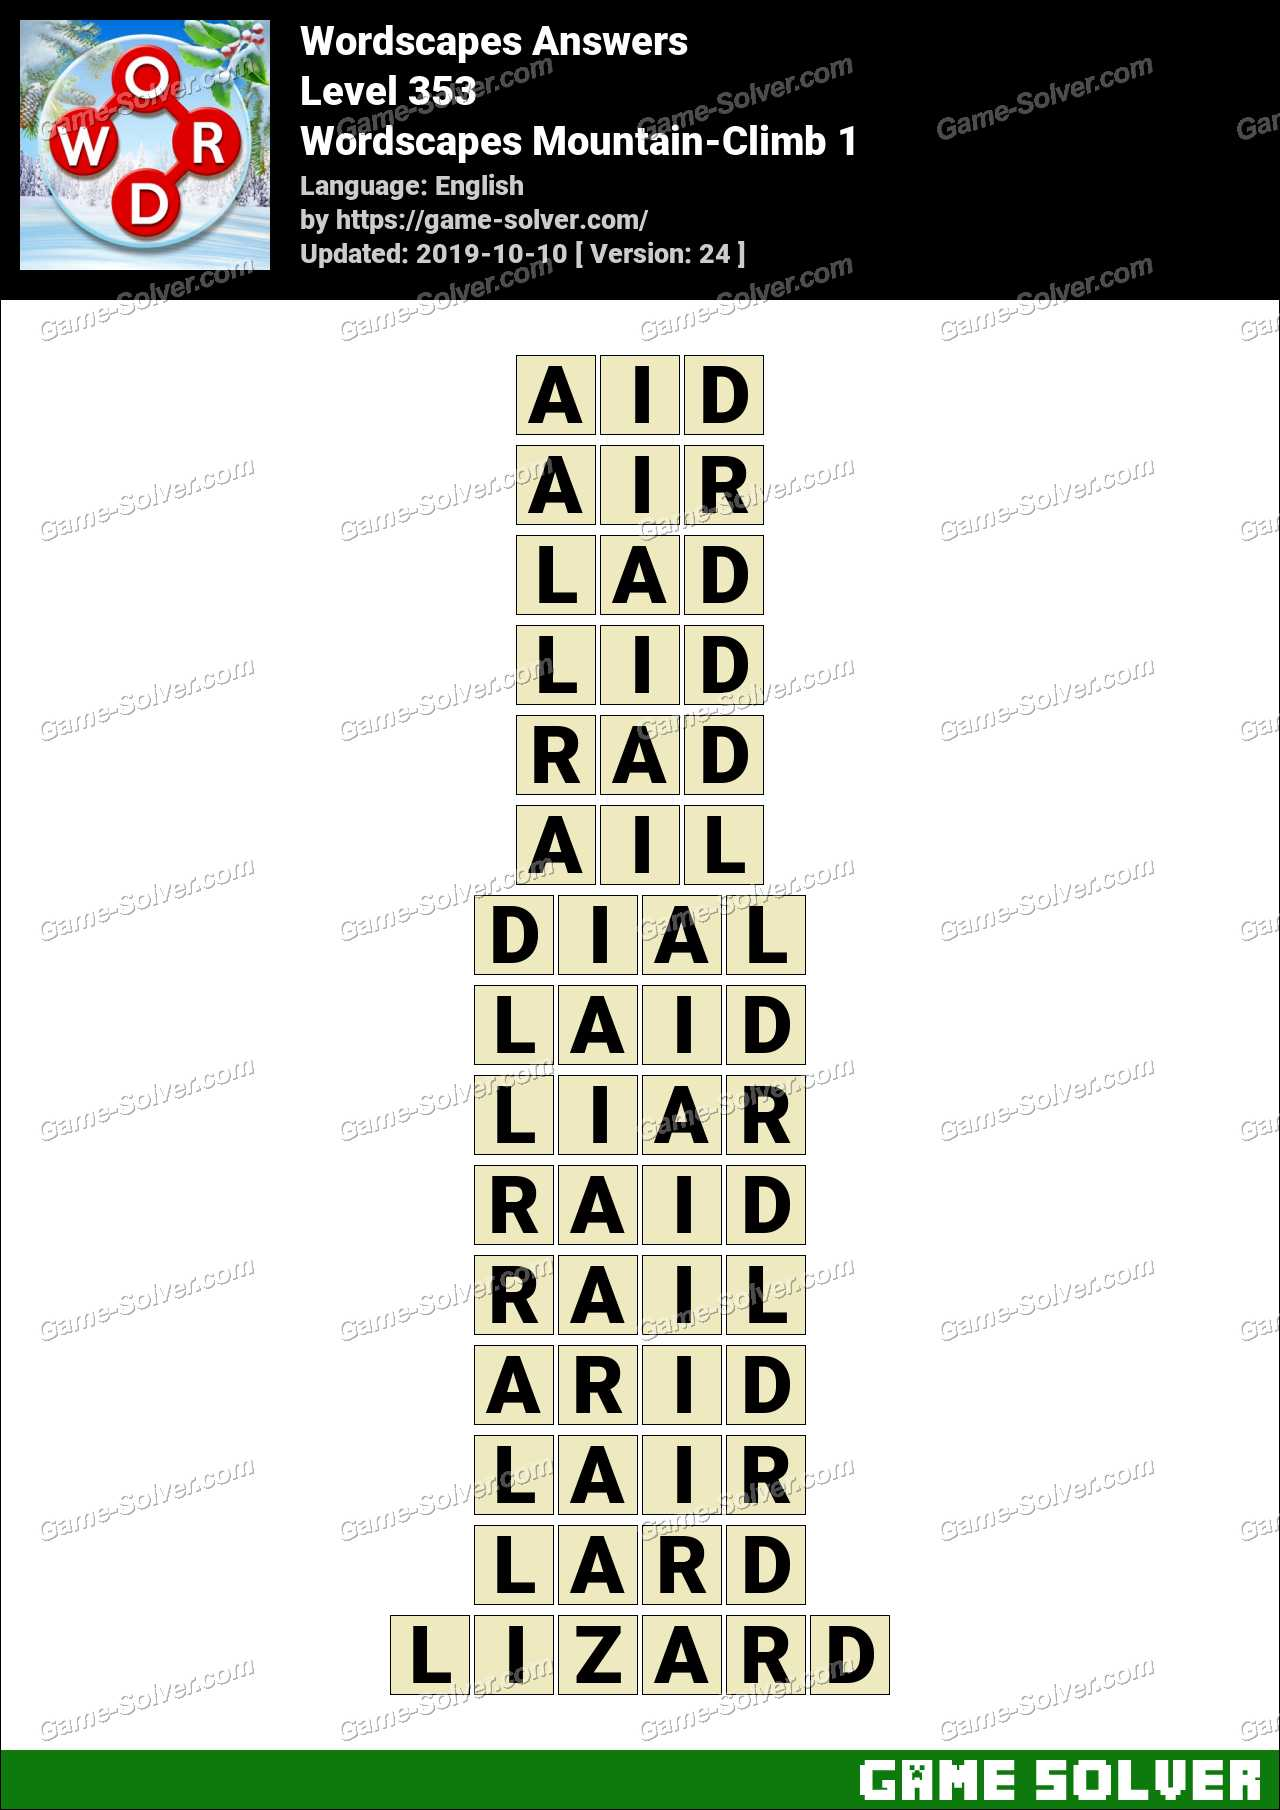 Wordscapes Mountain-Climb 1 Answers